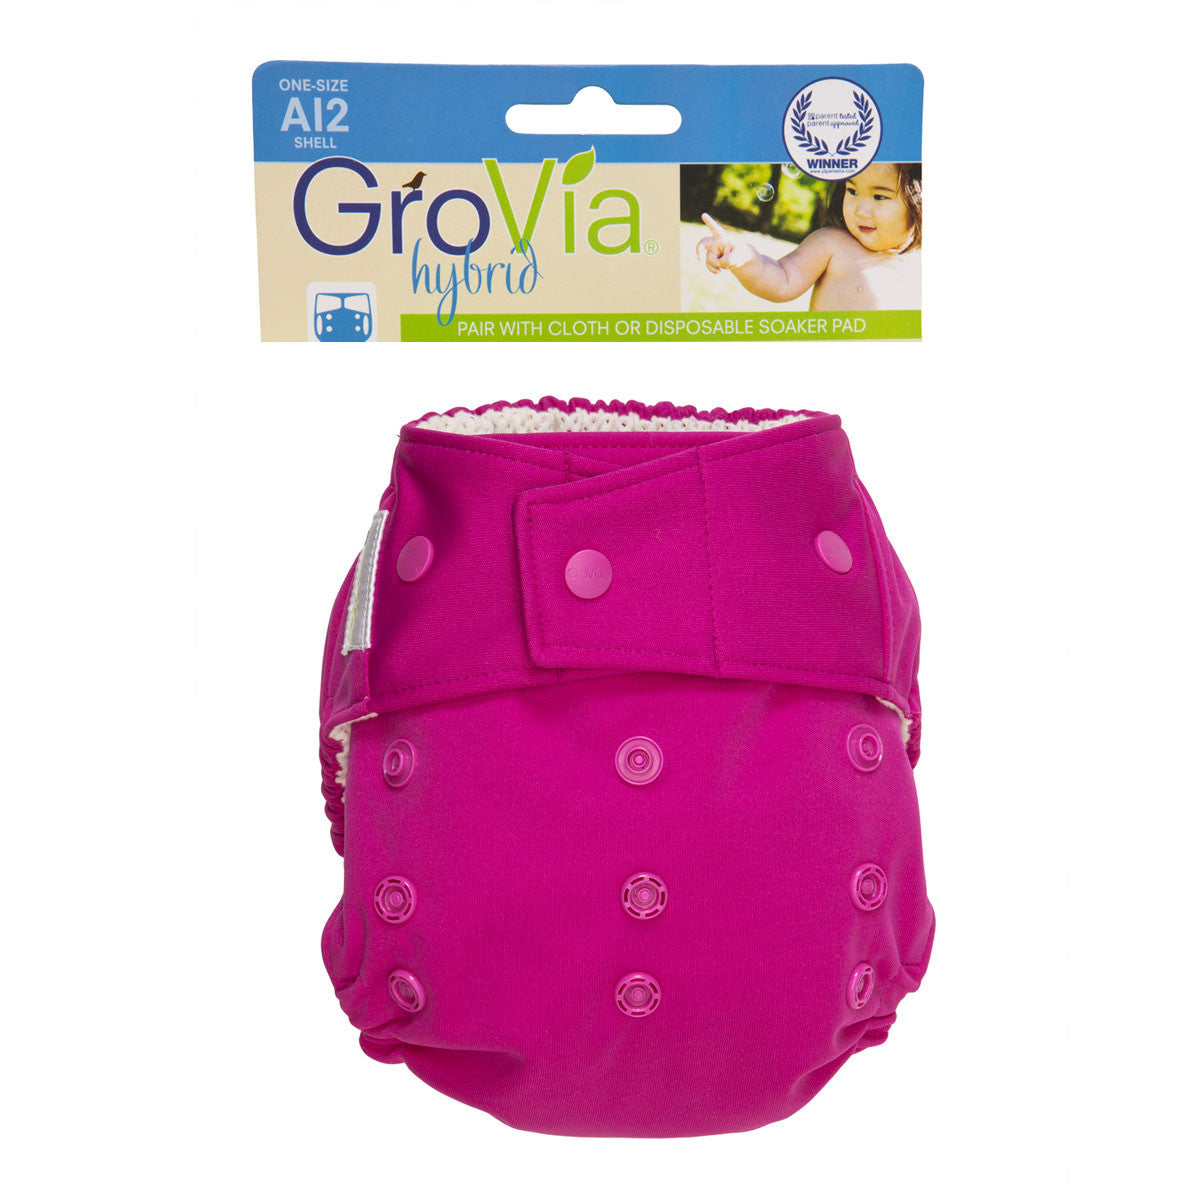 Grovia Hybrid Nappy Cover Single Shell  Lotus / Snaps - Grovia Australia - Little Earth Nest - 10